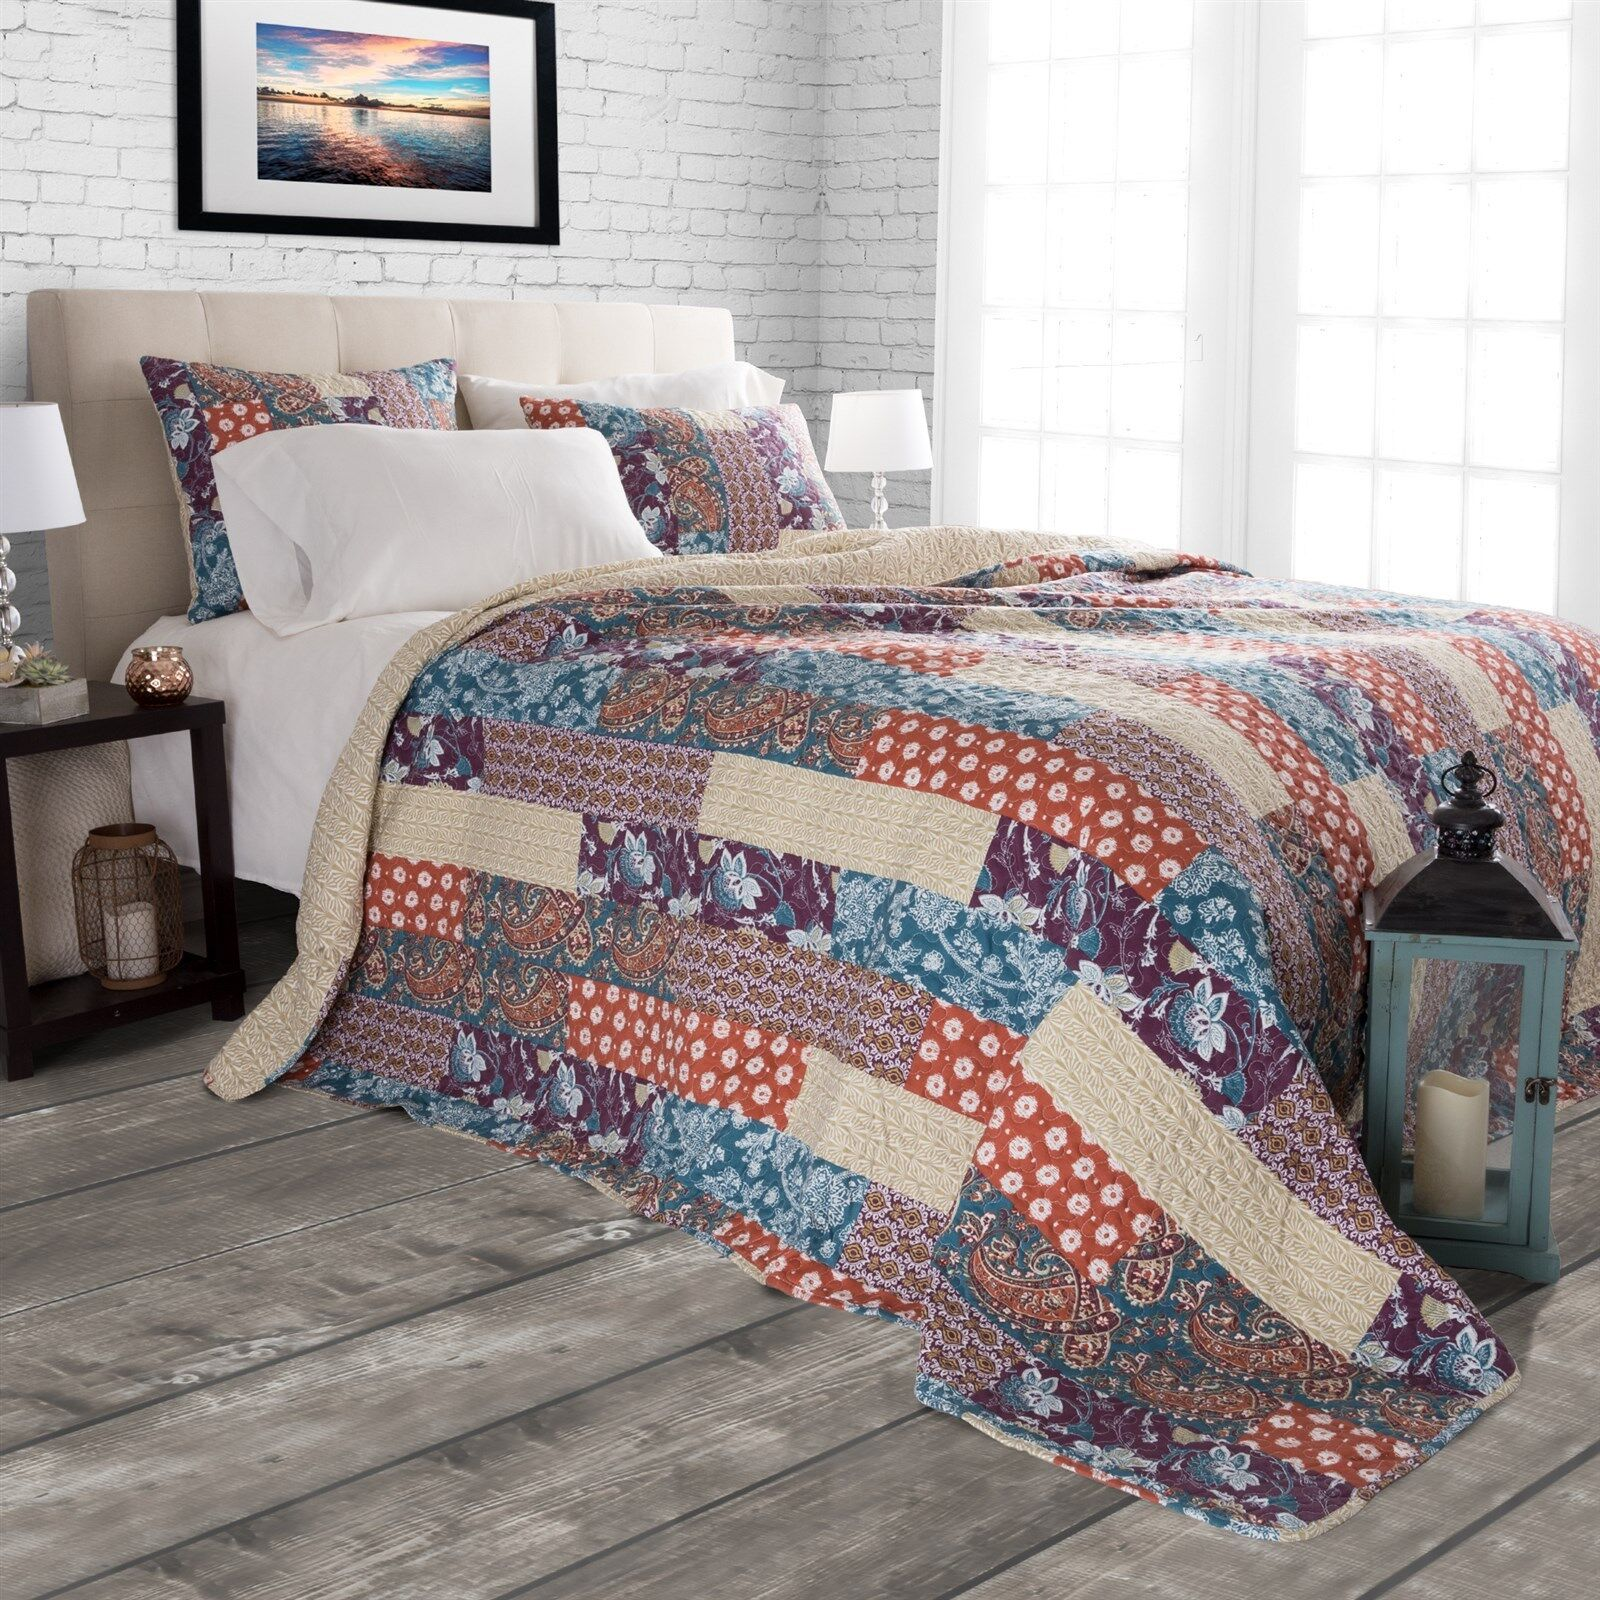 Floral Patchwork Rustic Quilted Blanket Bedspread Twin Queen King